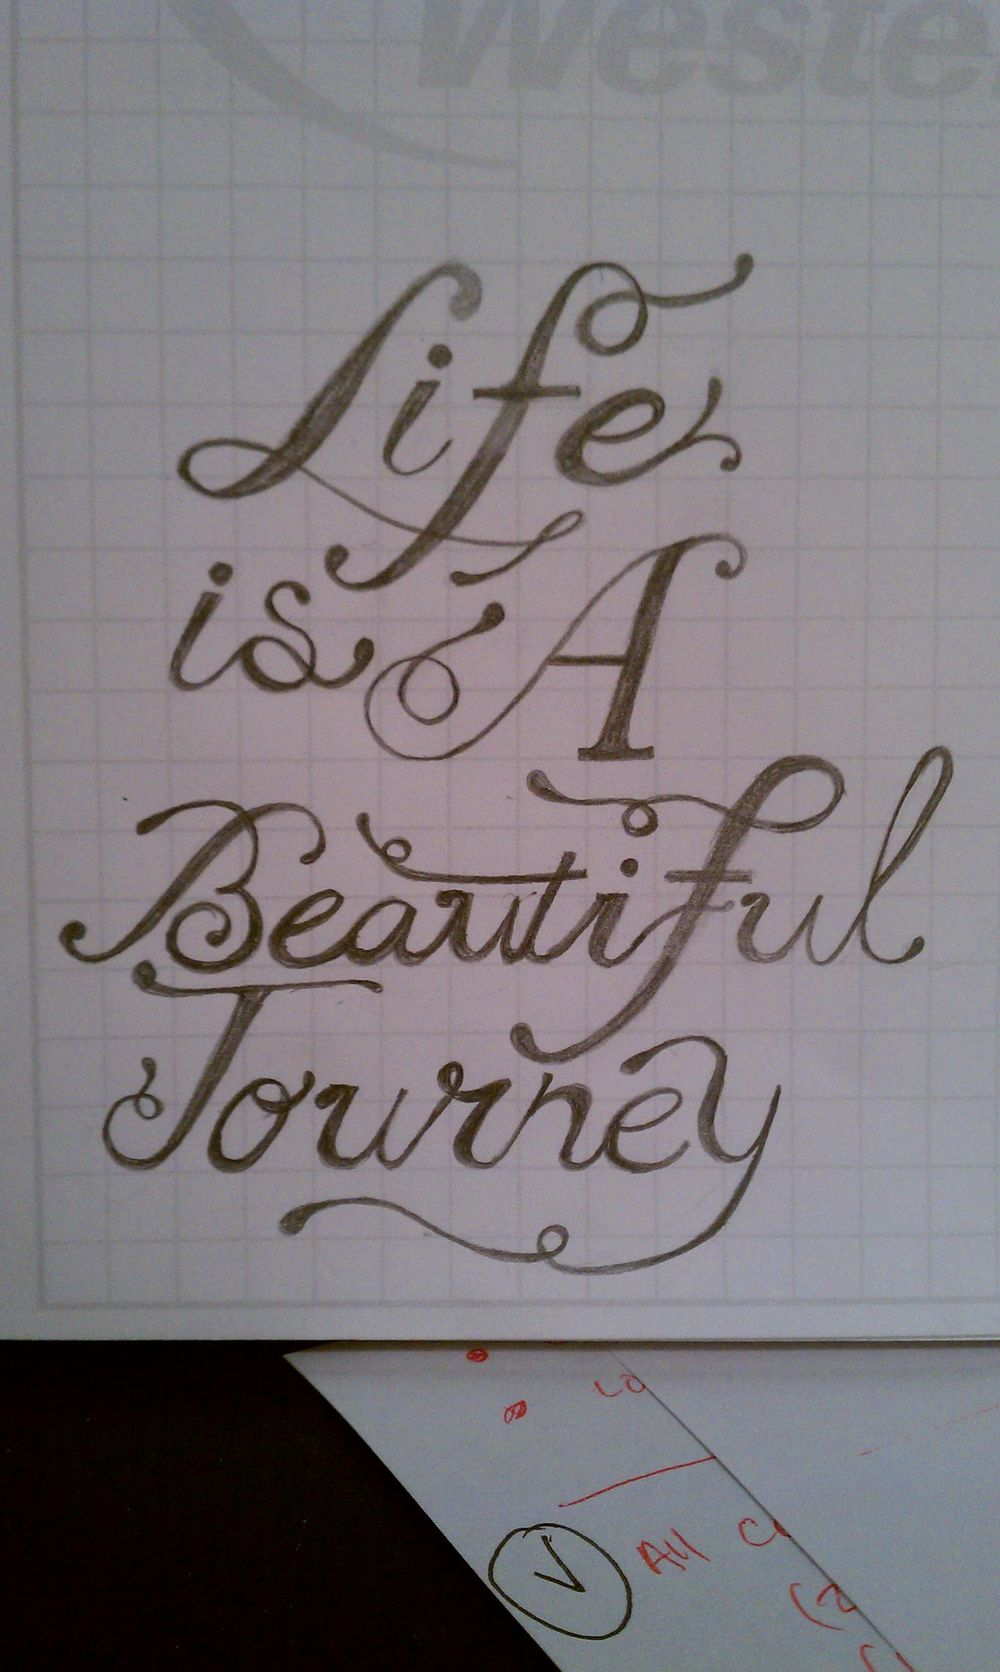 My life motto - image 1 - student project